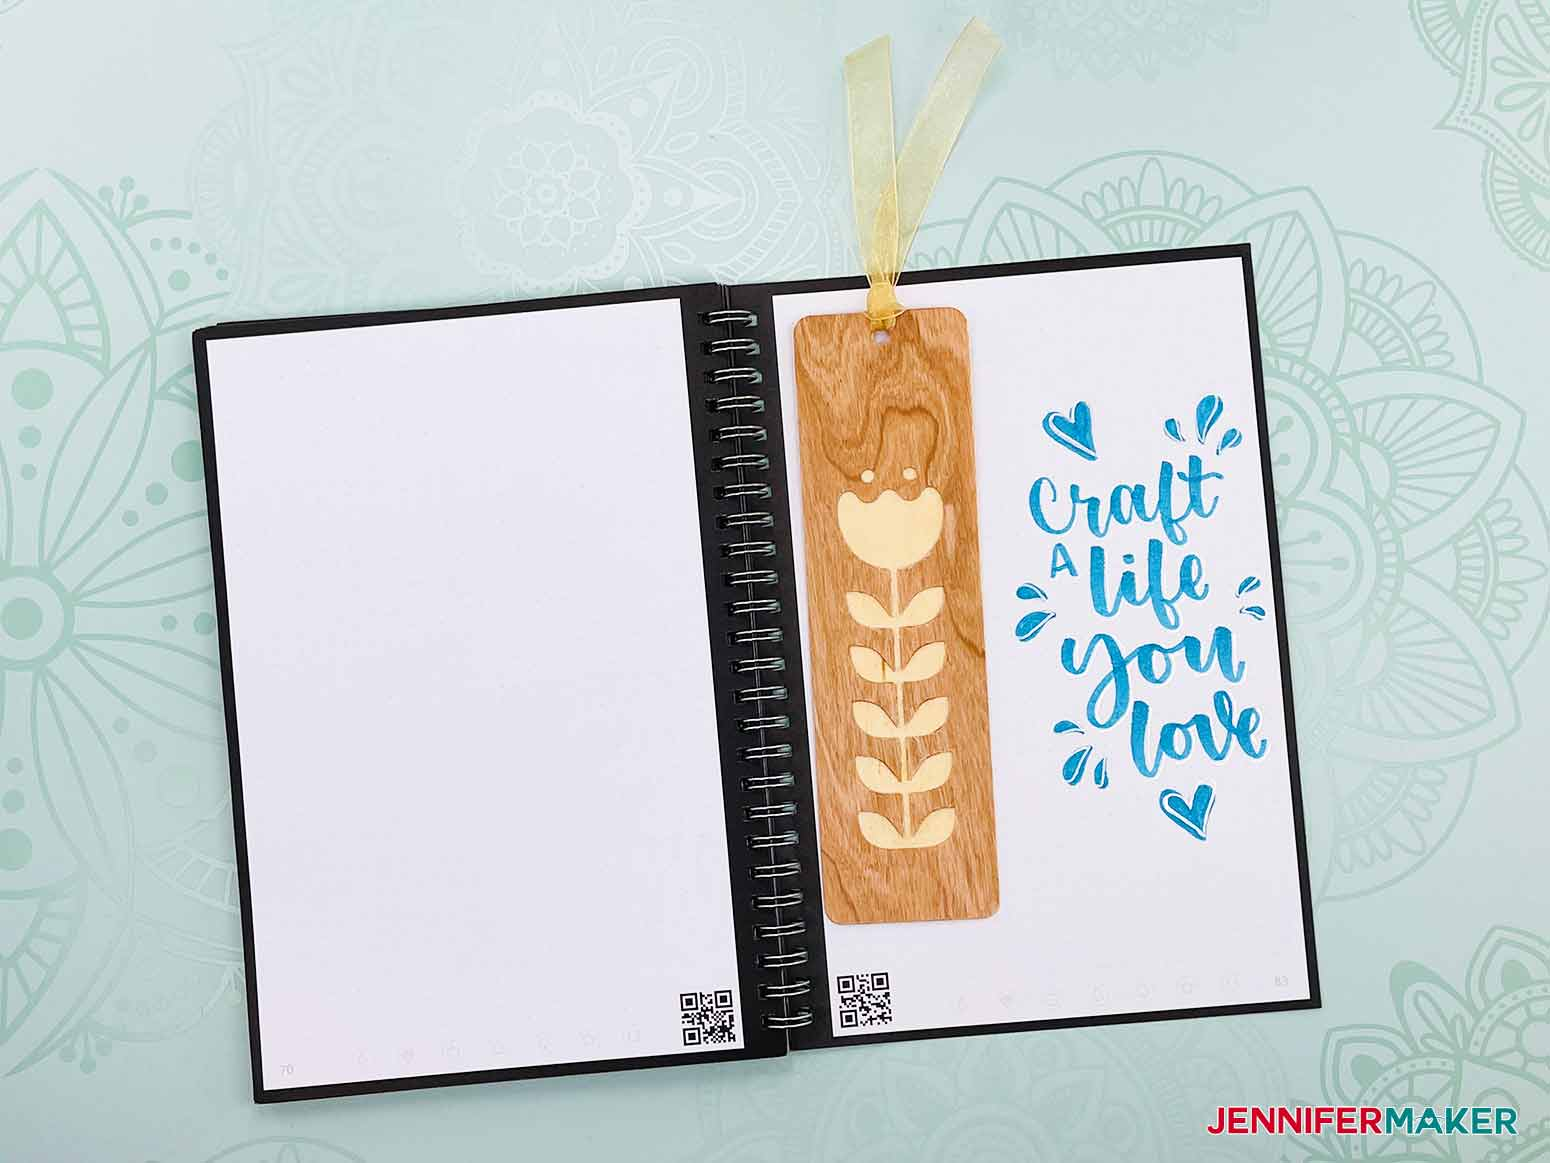 This is what one of my bookmarks looks like from my Wooden Bookmarks project